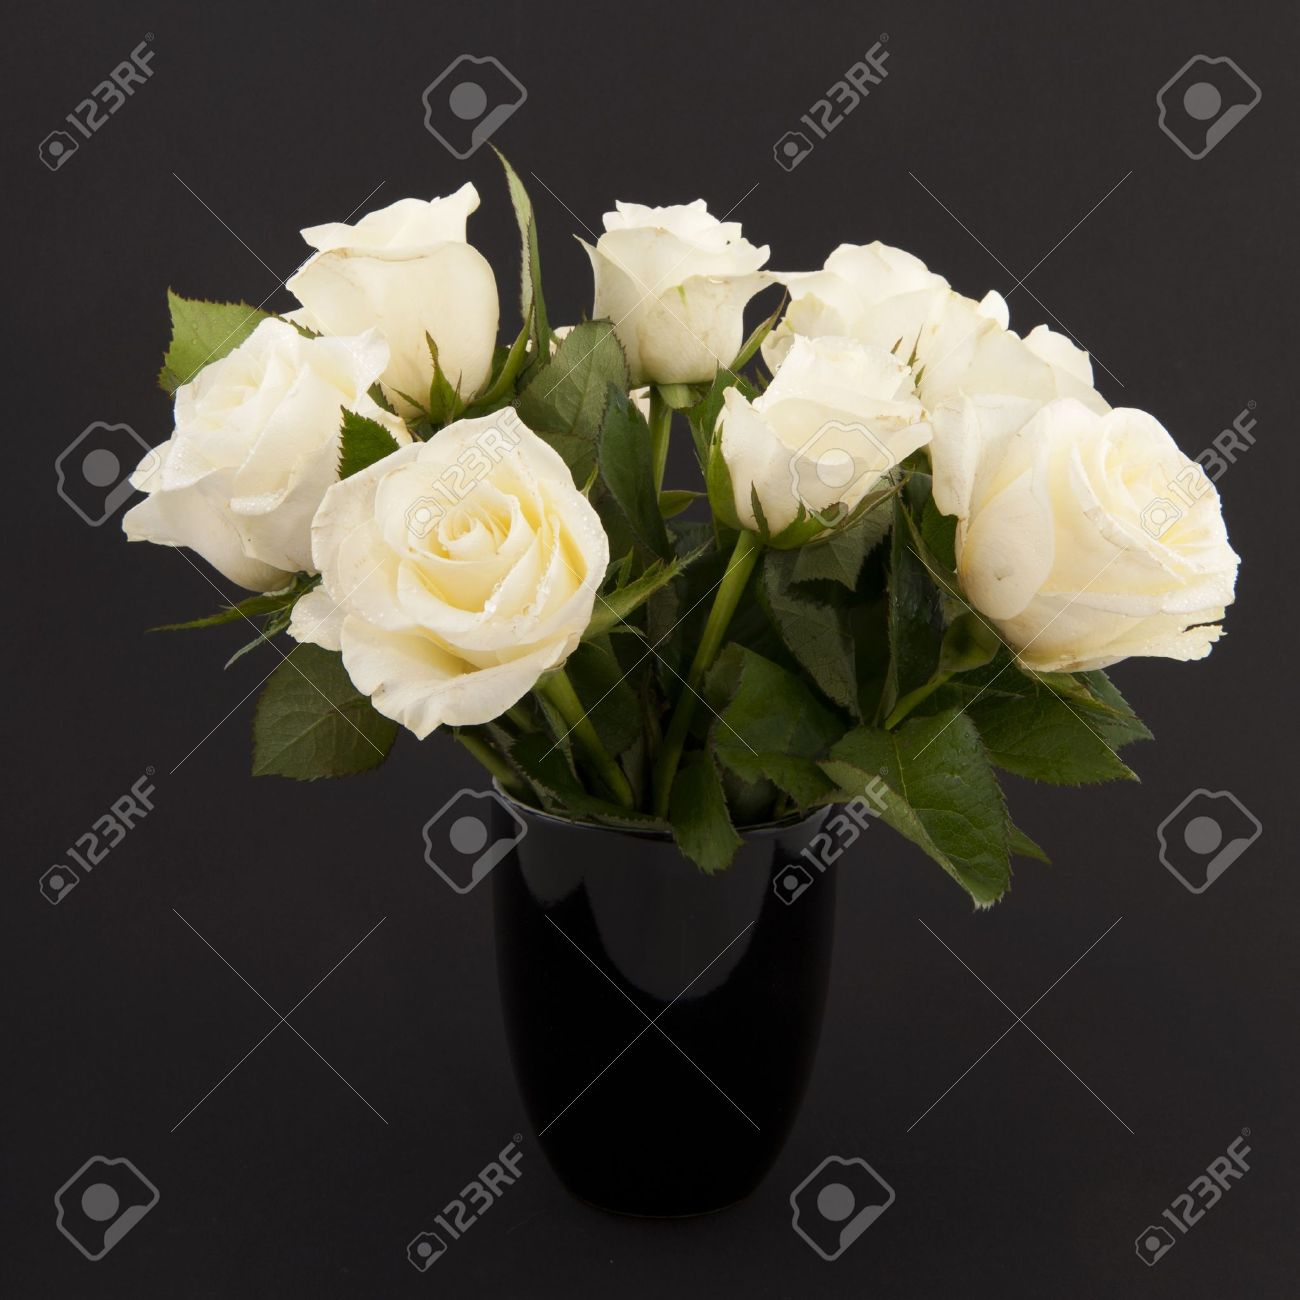 Vase White Roses For A Funeral Isolated On Black Stock Photo